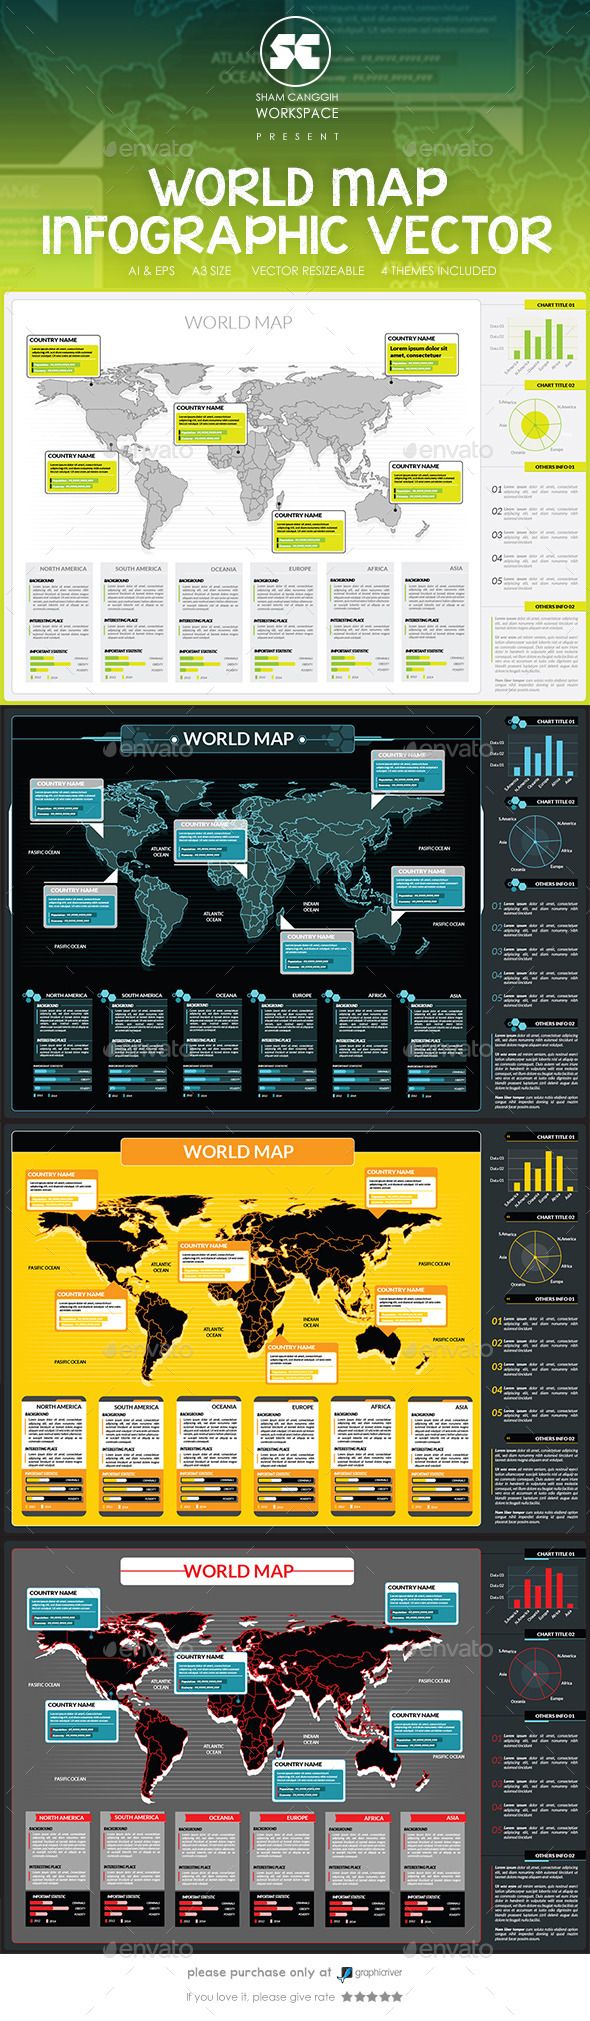 GraphicRiver World Map Infographic 9143880